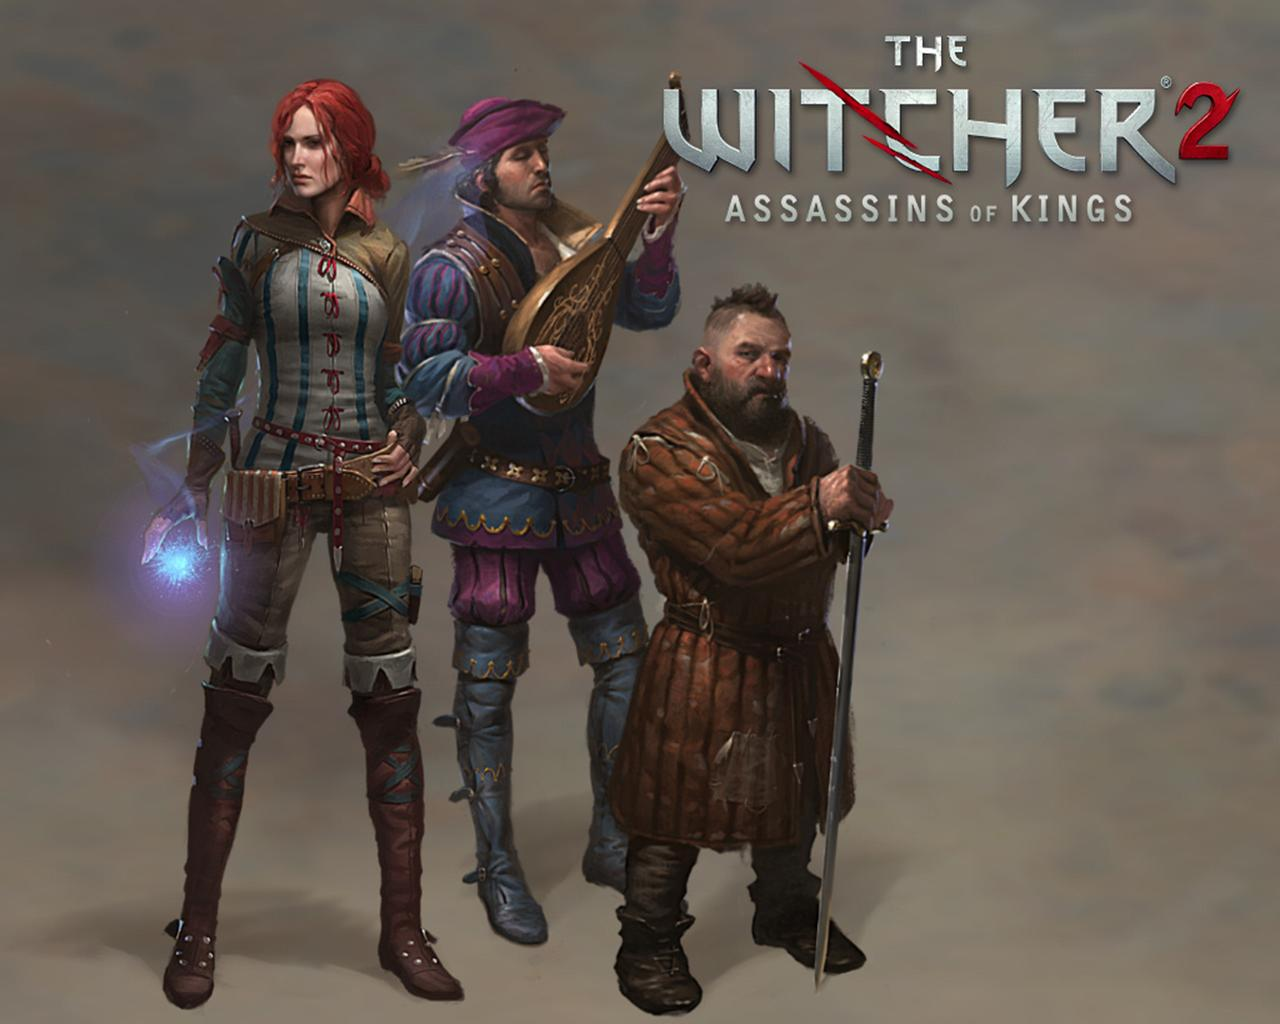 Wallpapers The Witcher The Witcher 2 Assassins of Kings vdeo game 1280x1024